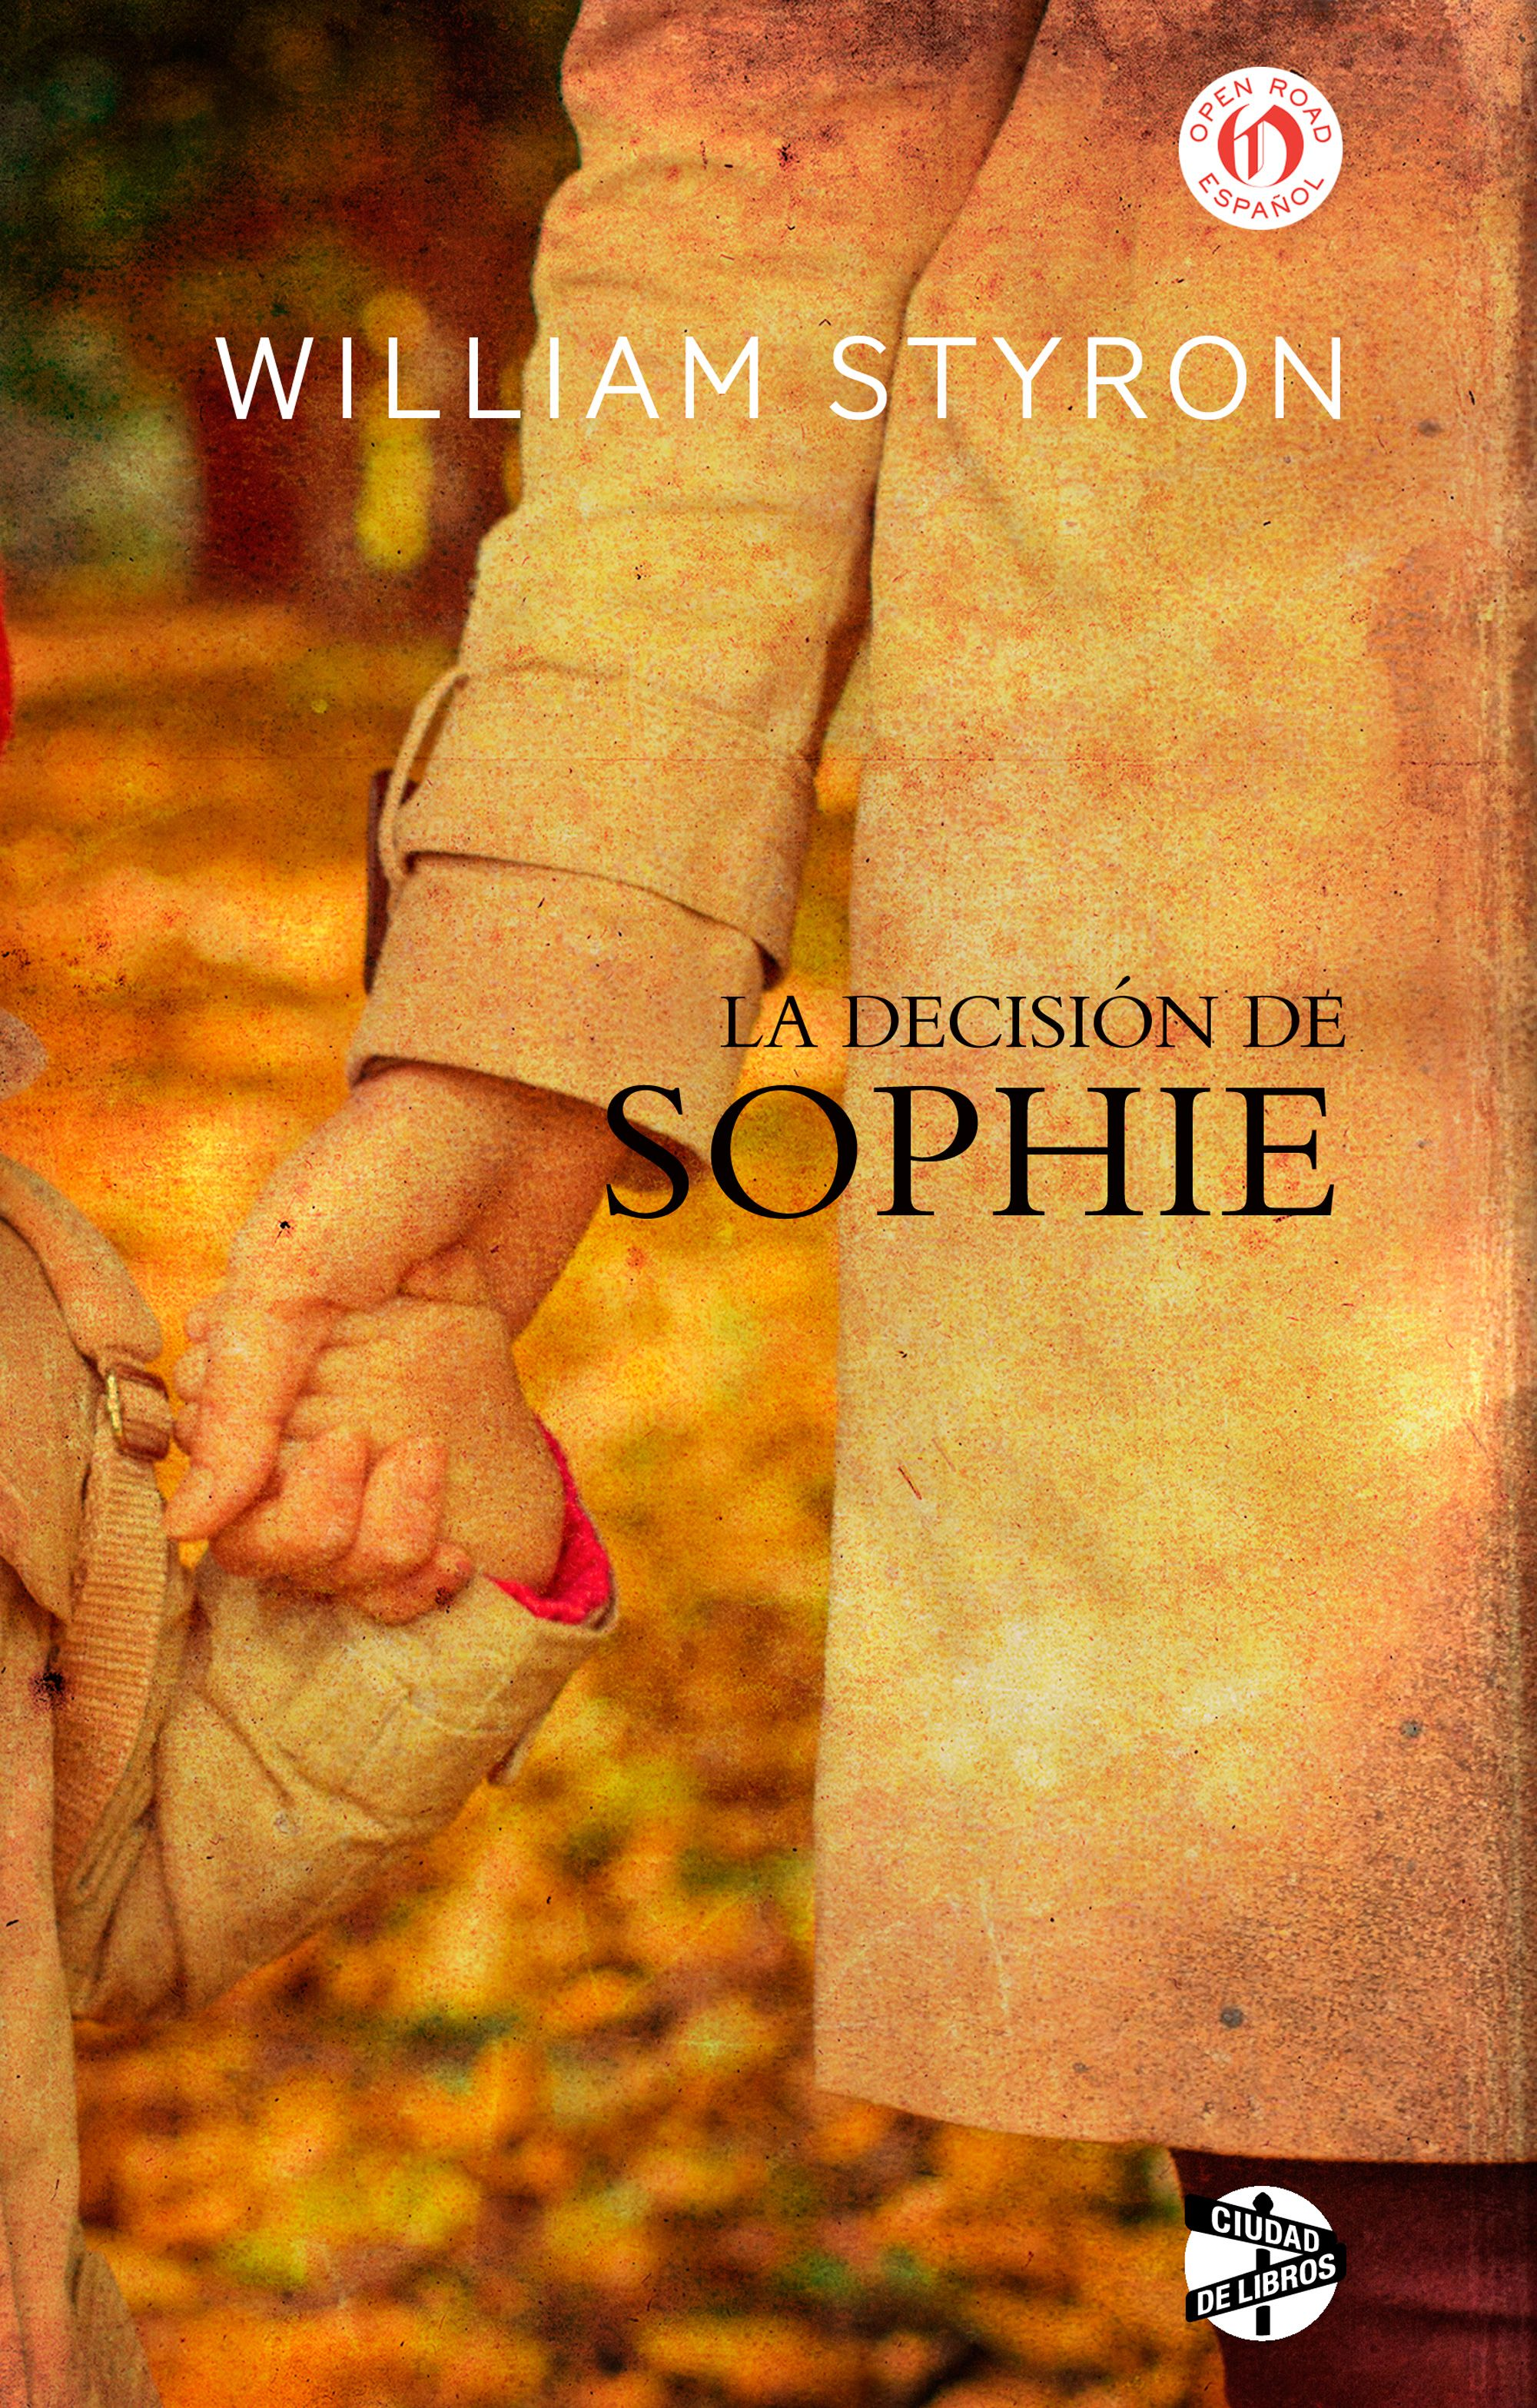 La decisión de Sophie. William Styron